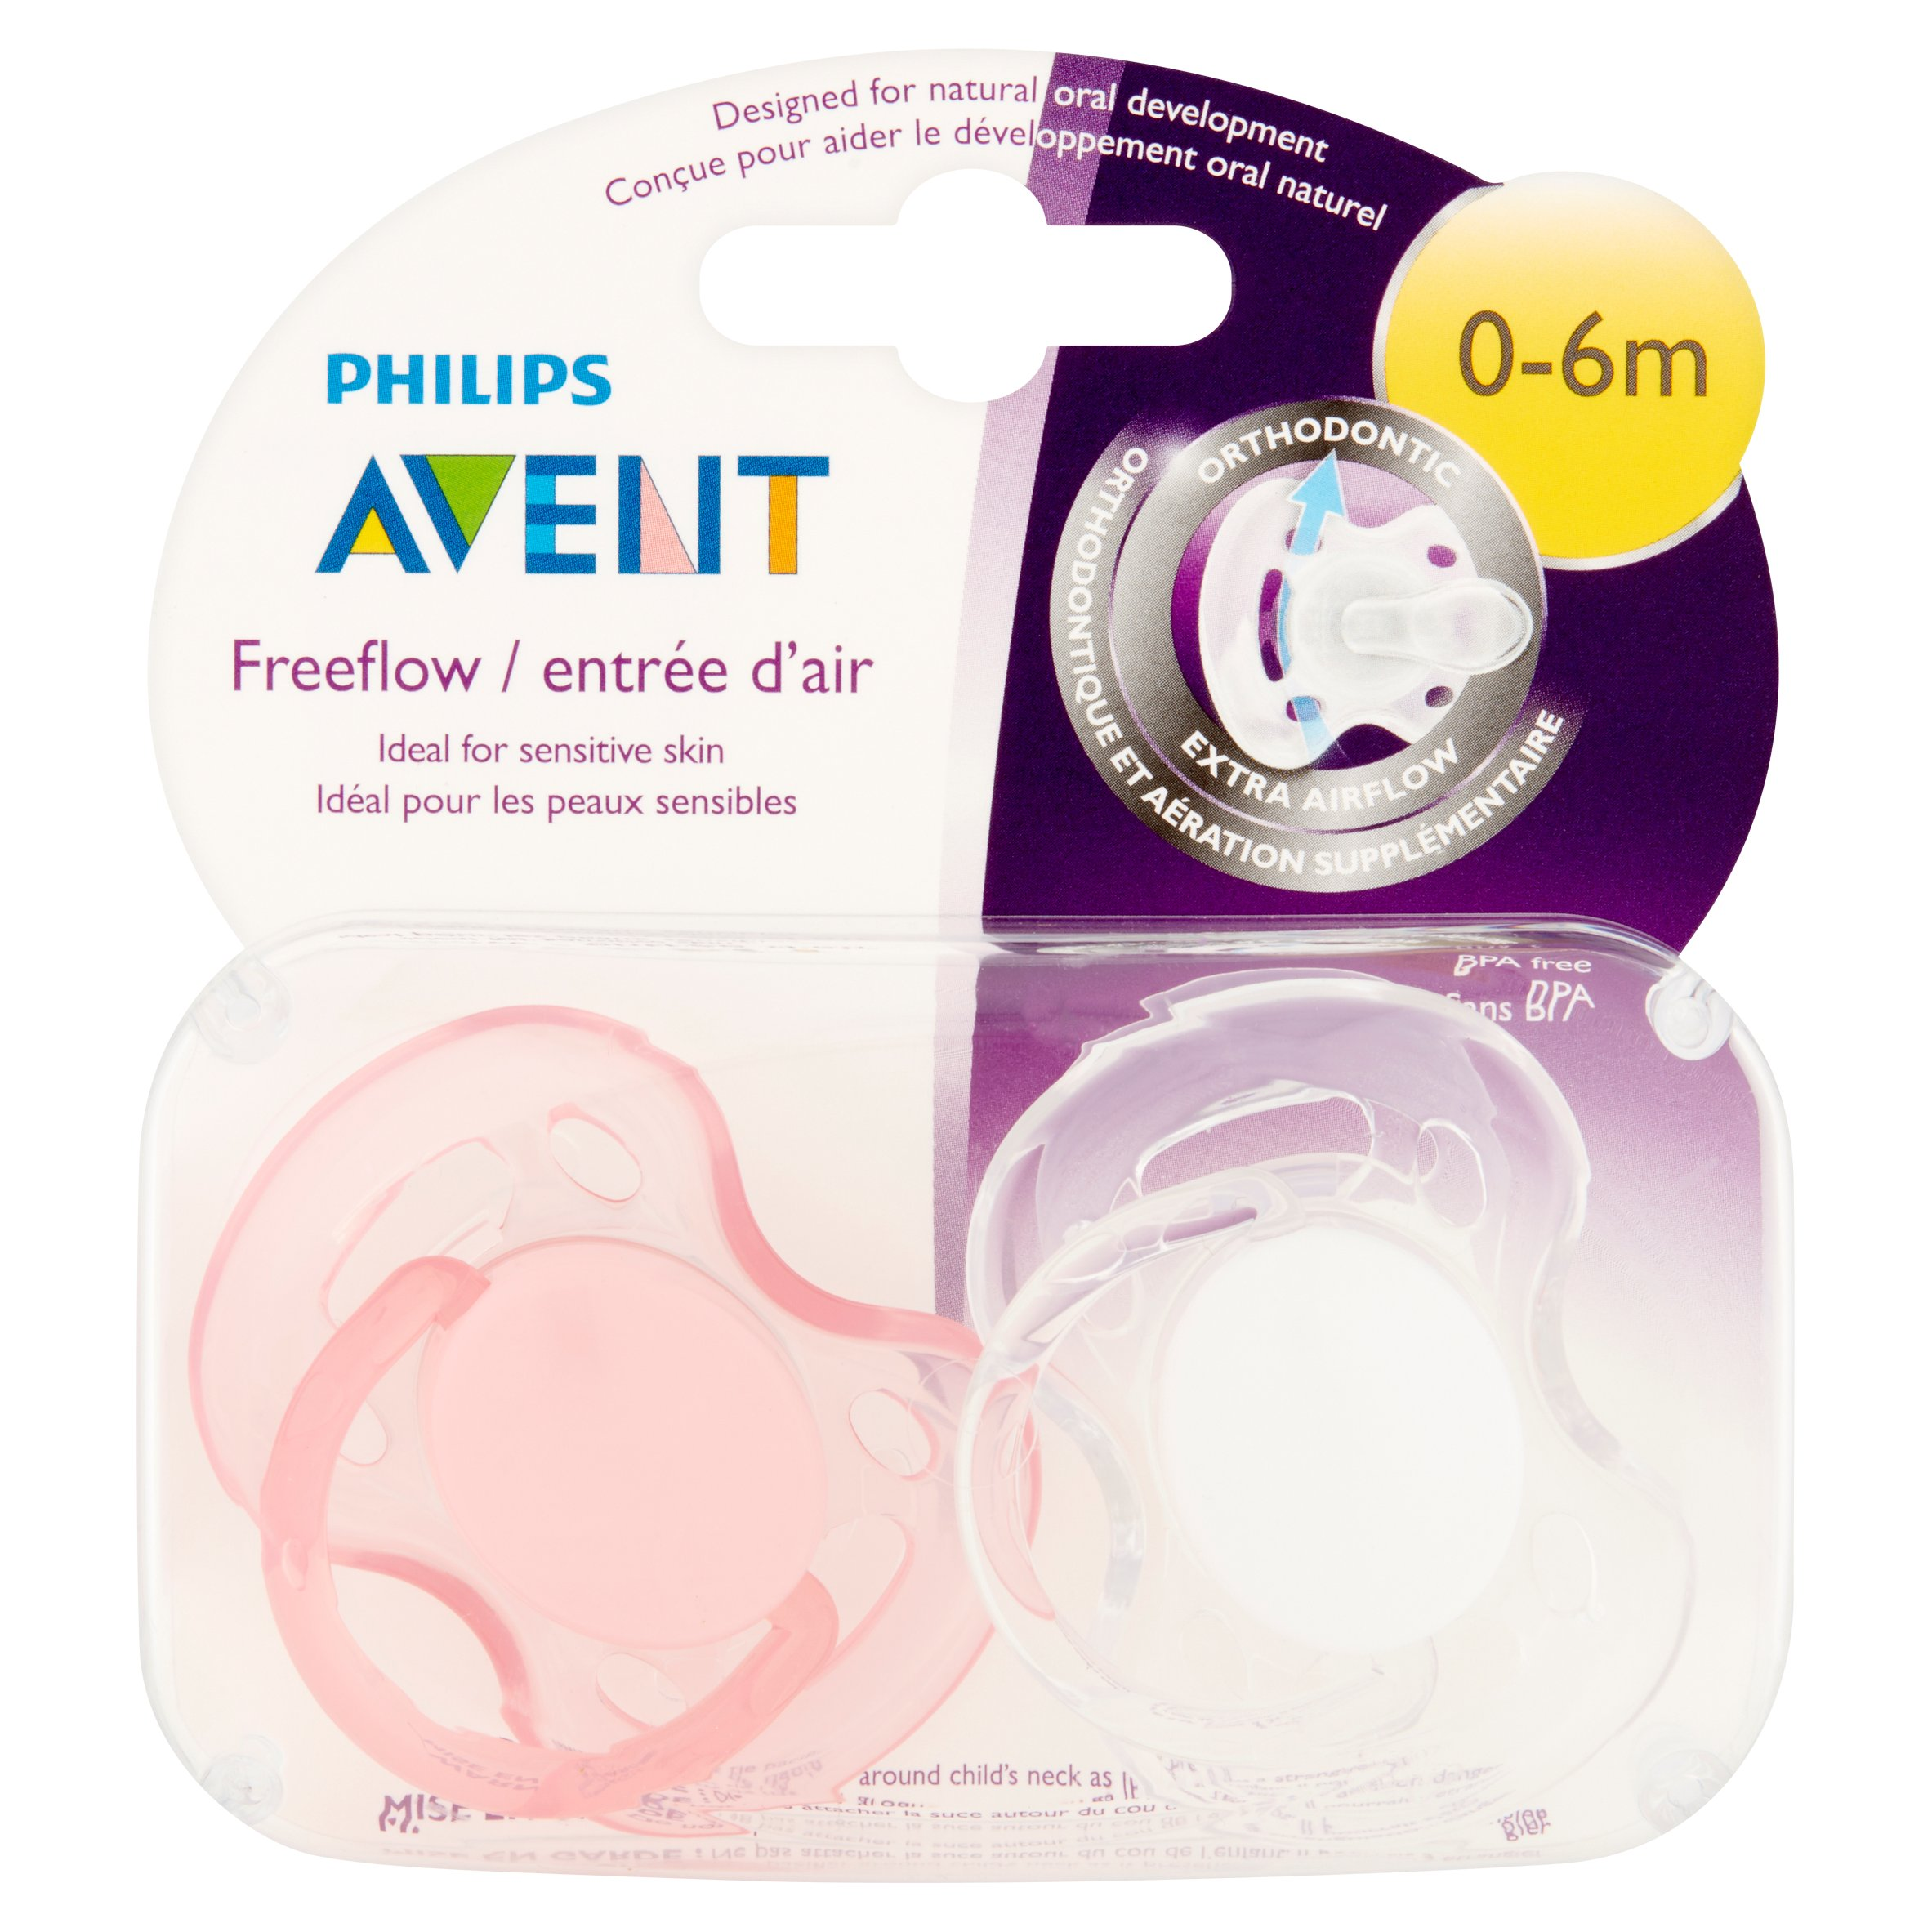 Philips Avent Freeflow 0-6 Months Orthodontic Pacifier, 2 count